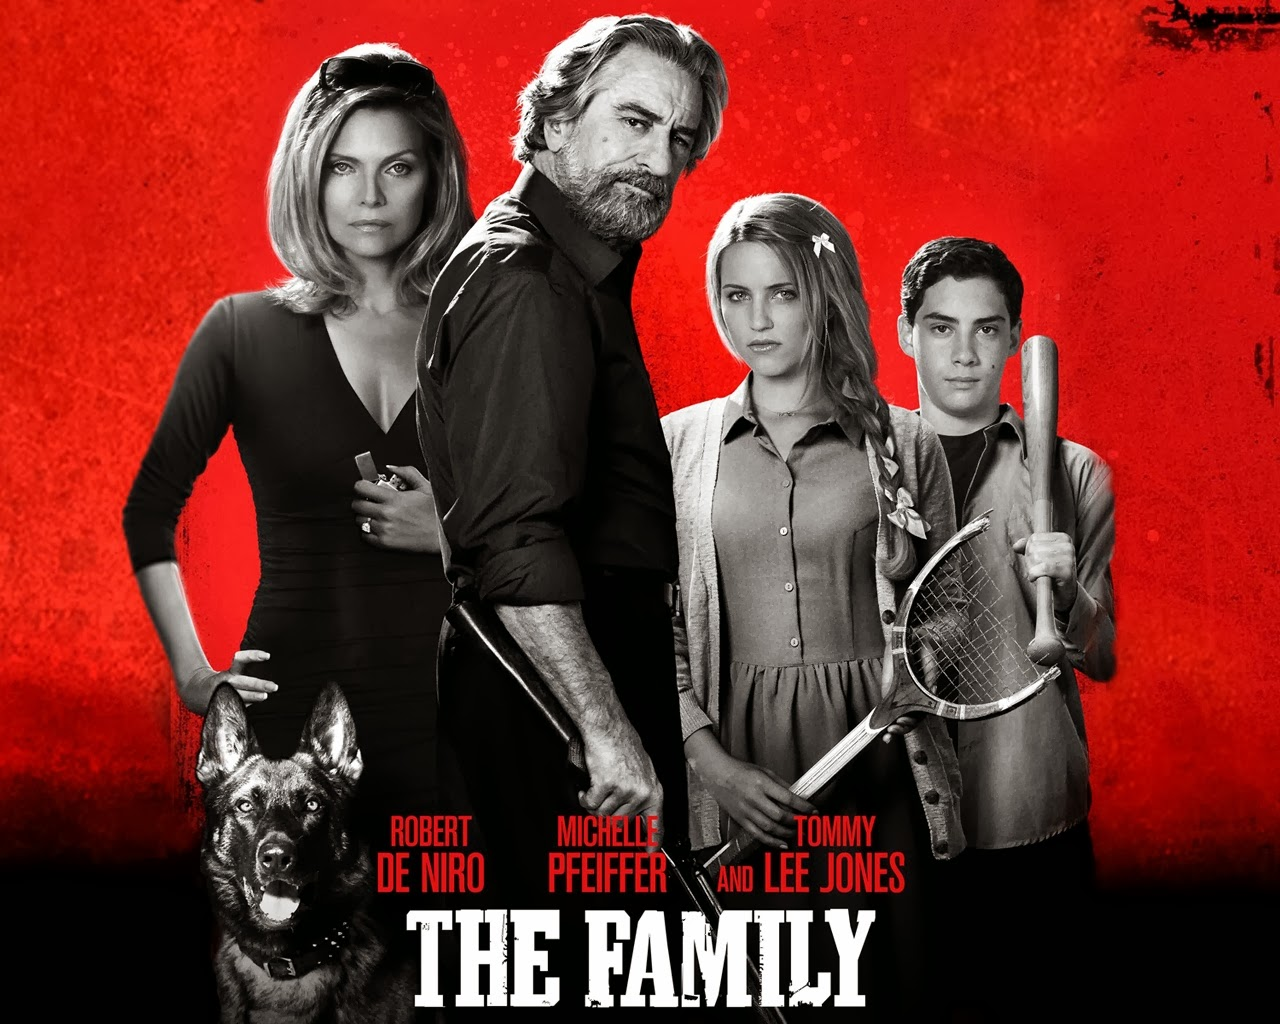 The above picture is a movie poster for the film The Family